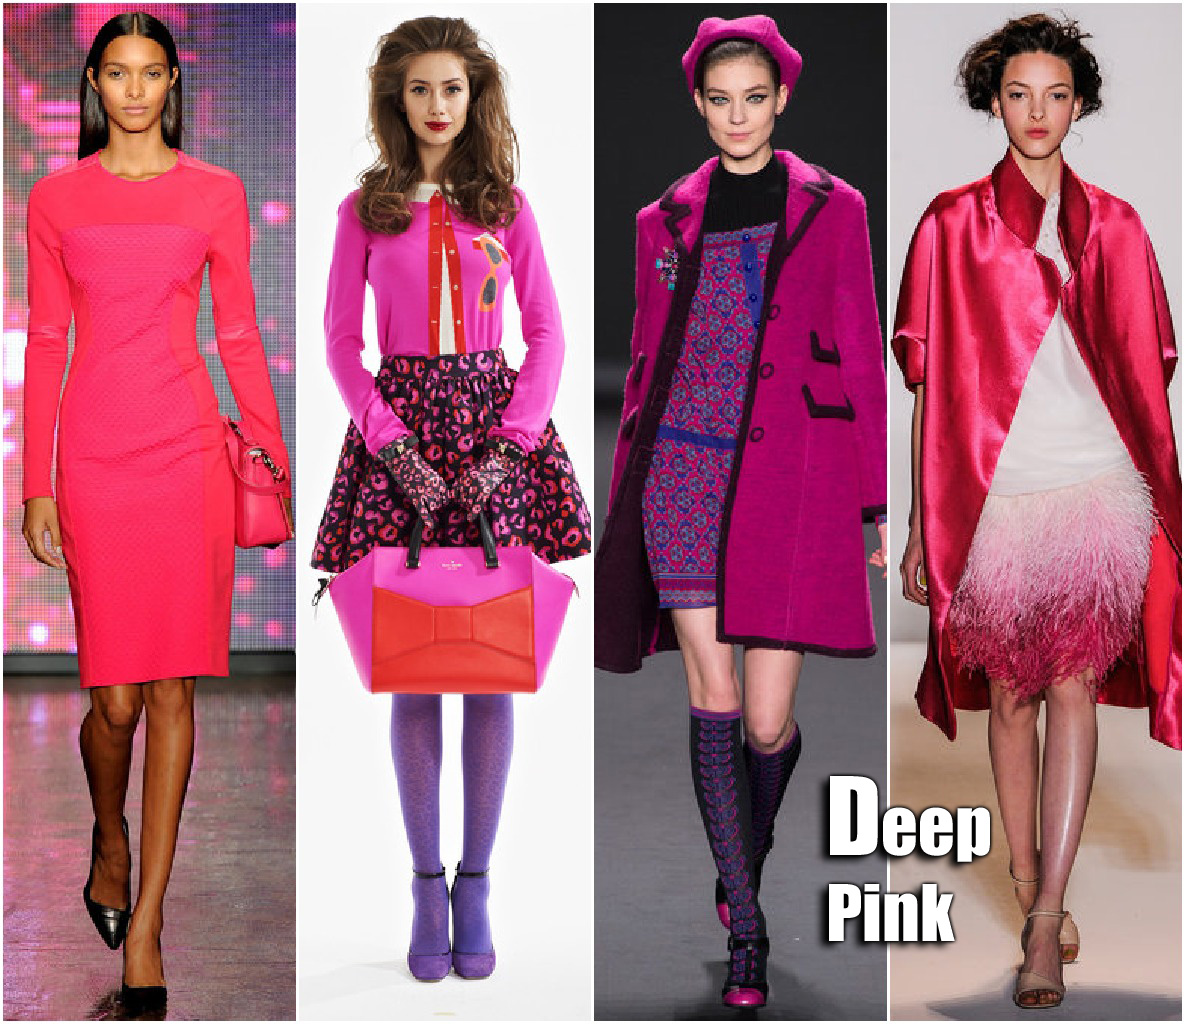 New York Fashion Week Fall 2013 Trends Deep Pink Trend DKNY, Kate Spade, Ann Sui, Lela Rose